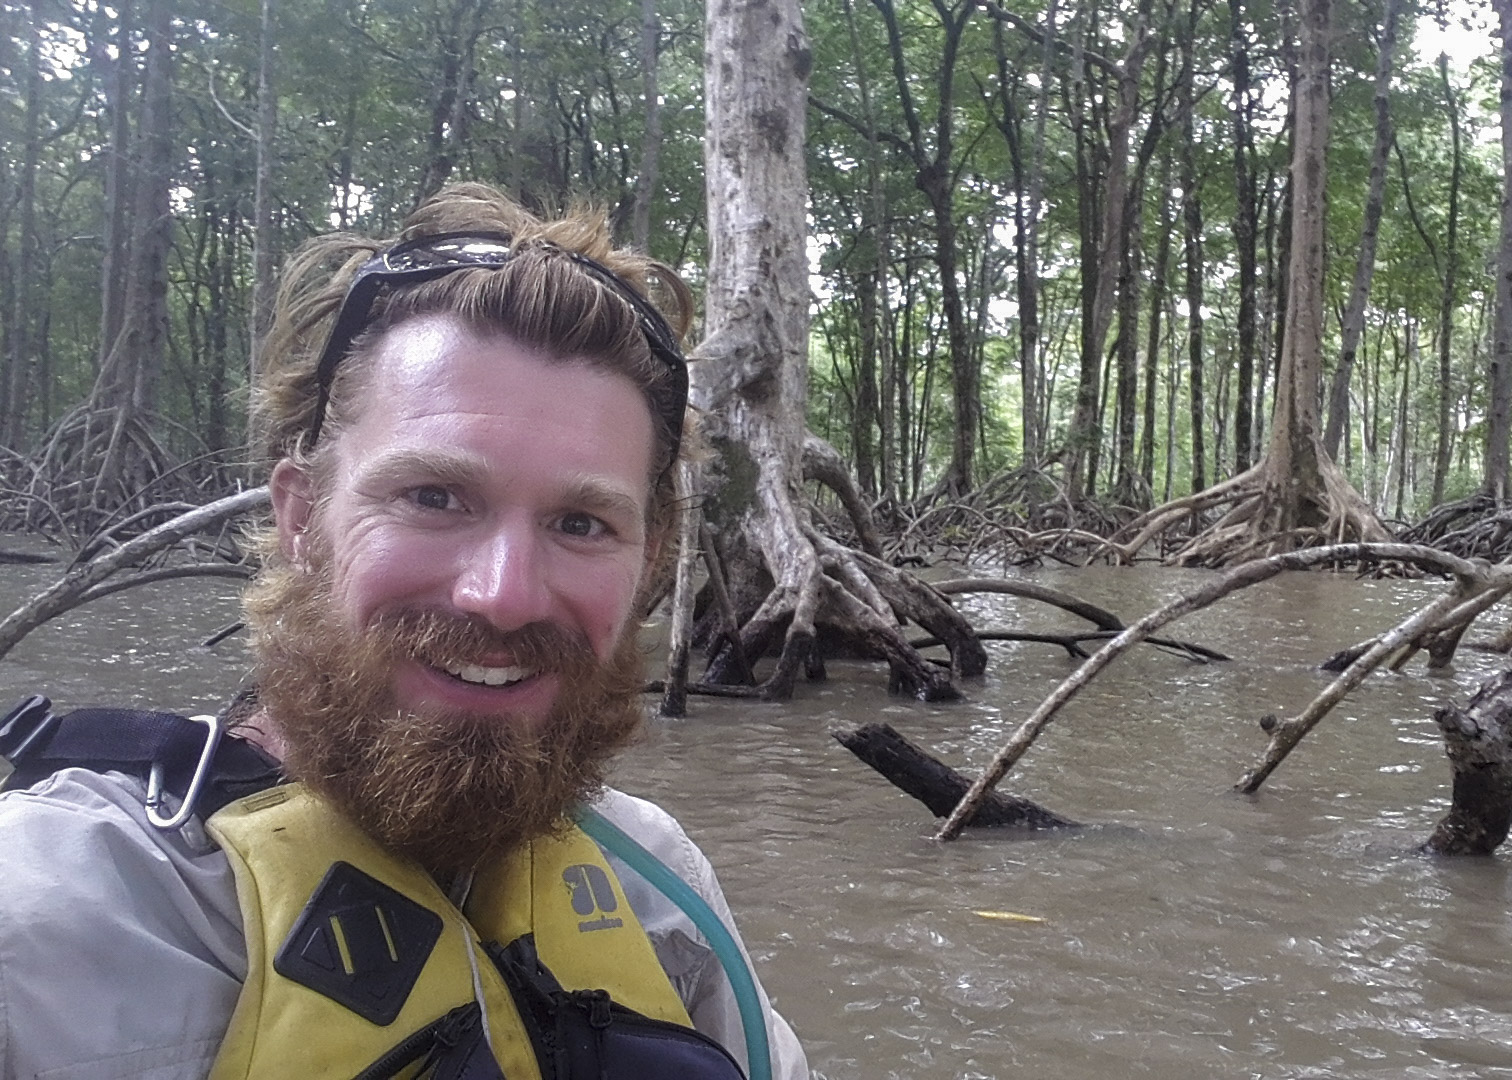 Hanging out in the mangroves